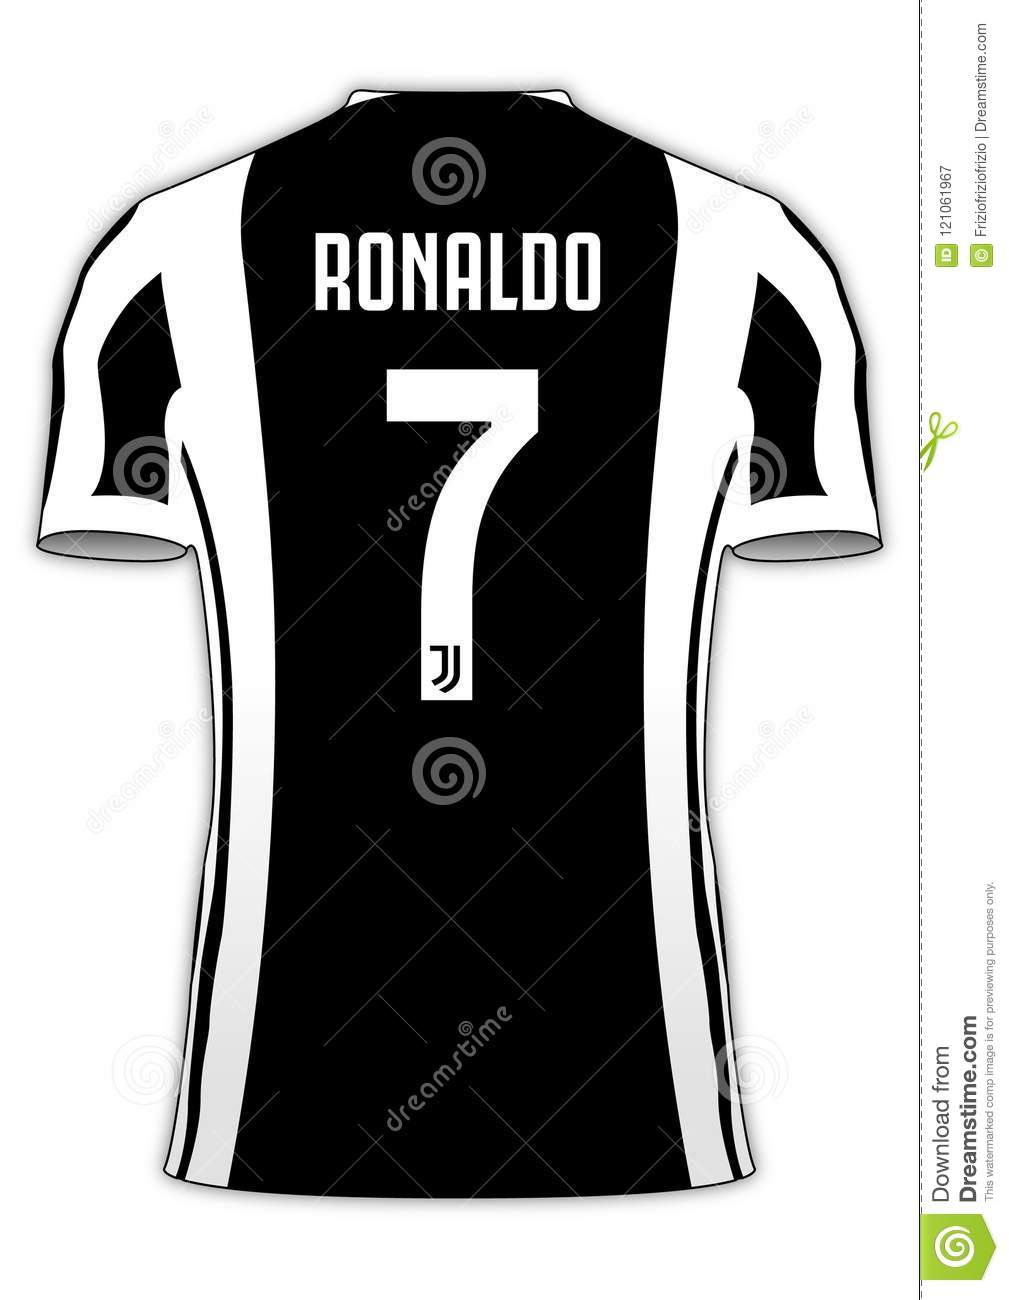 newest ab081 3f784 Cristiano Ronaldo Juventus Football Team Jersey Number 7 ...